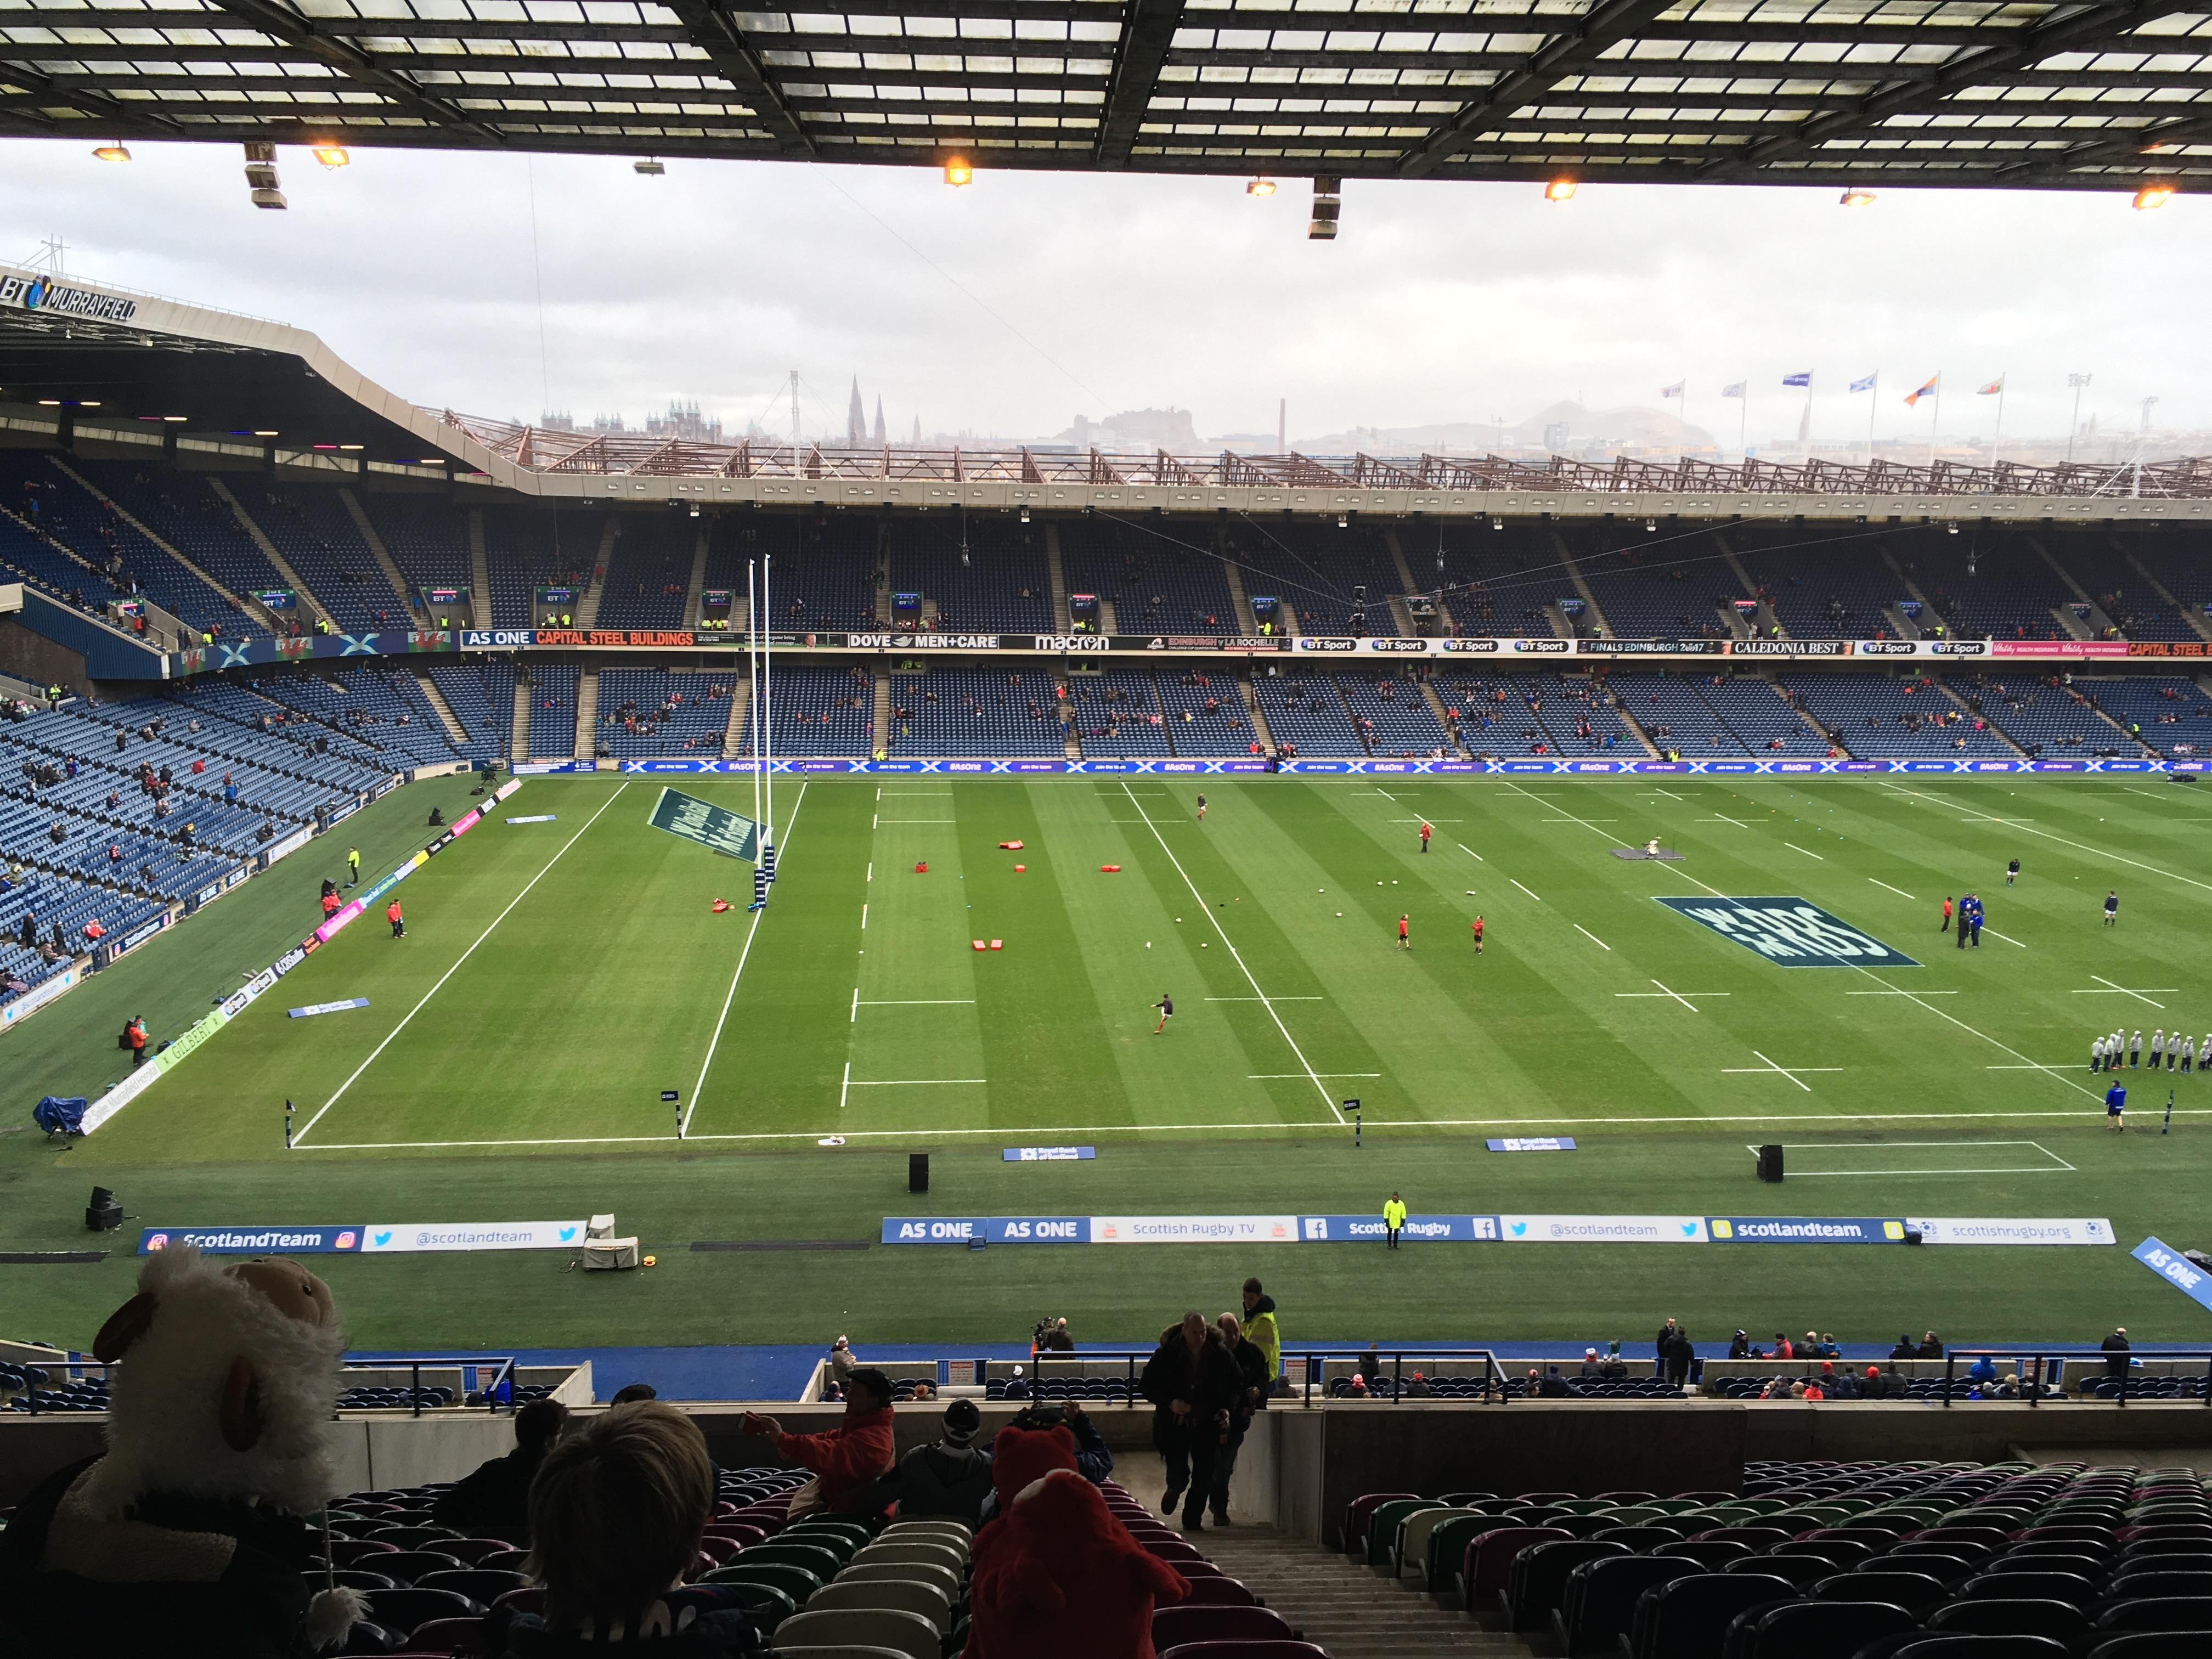 Murrayfield Stadium Section W32 Row LL Seat 10